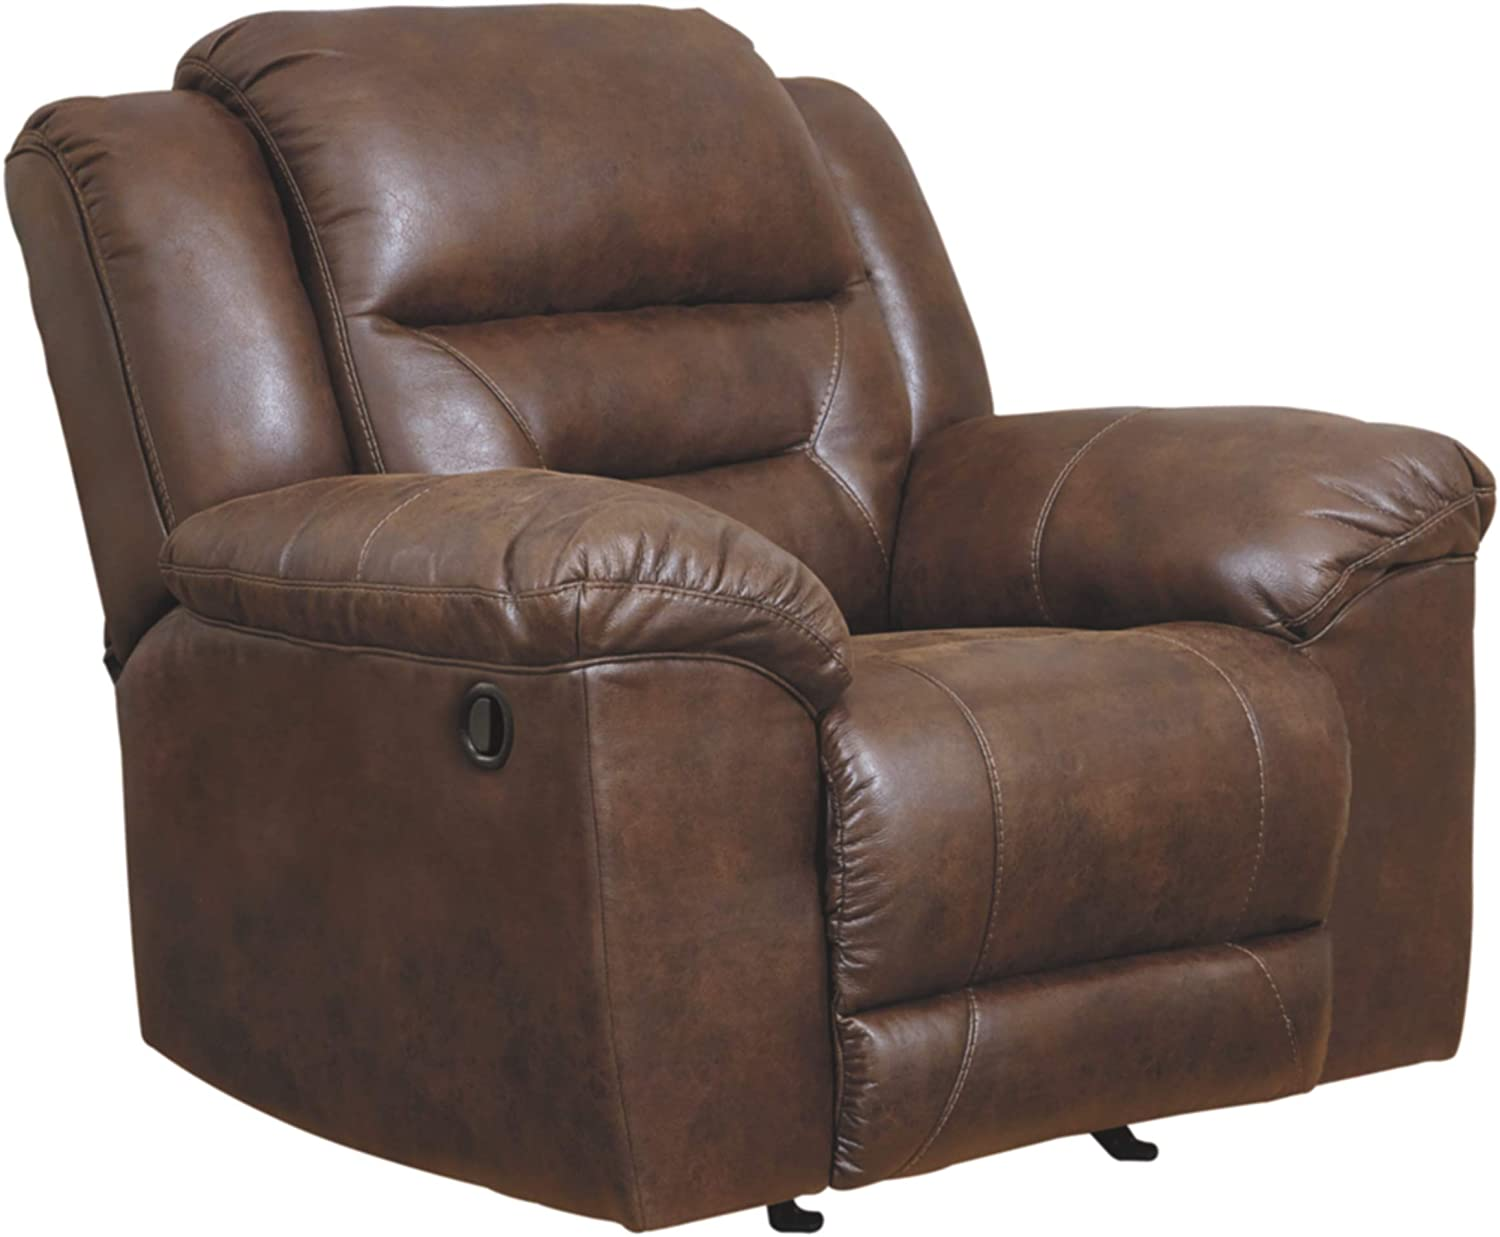 Signature Design by Ashley - Stoneland Contemporary Faux Leather Rocker Recliner, Brown